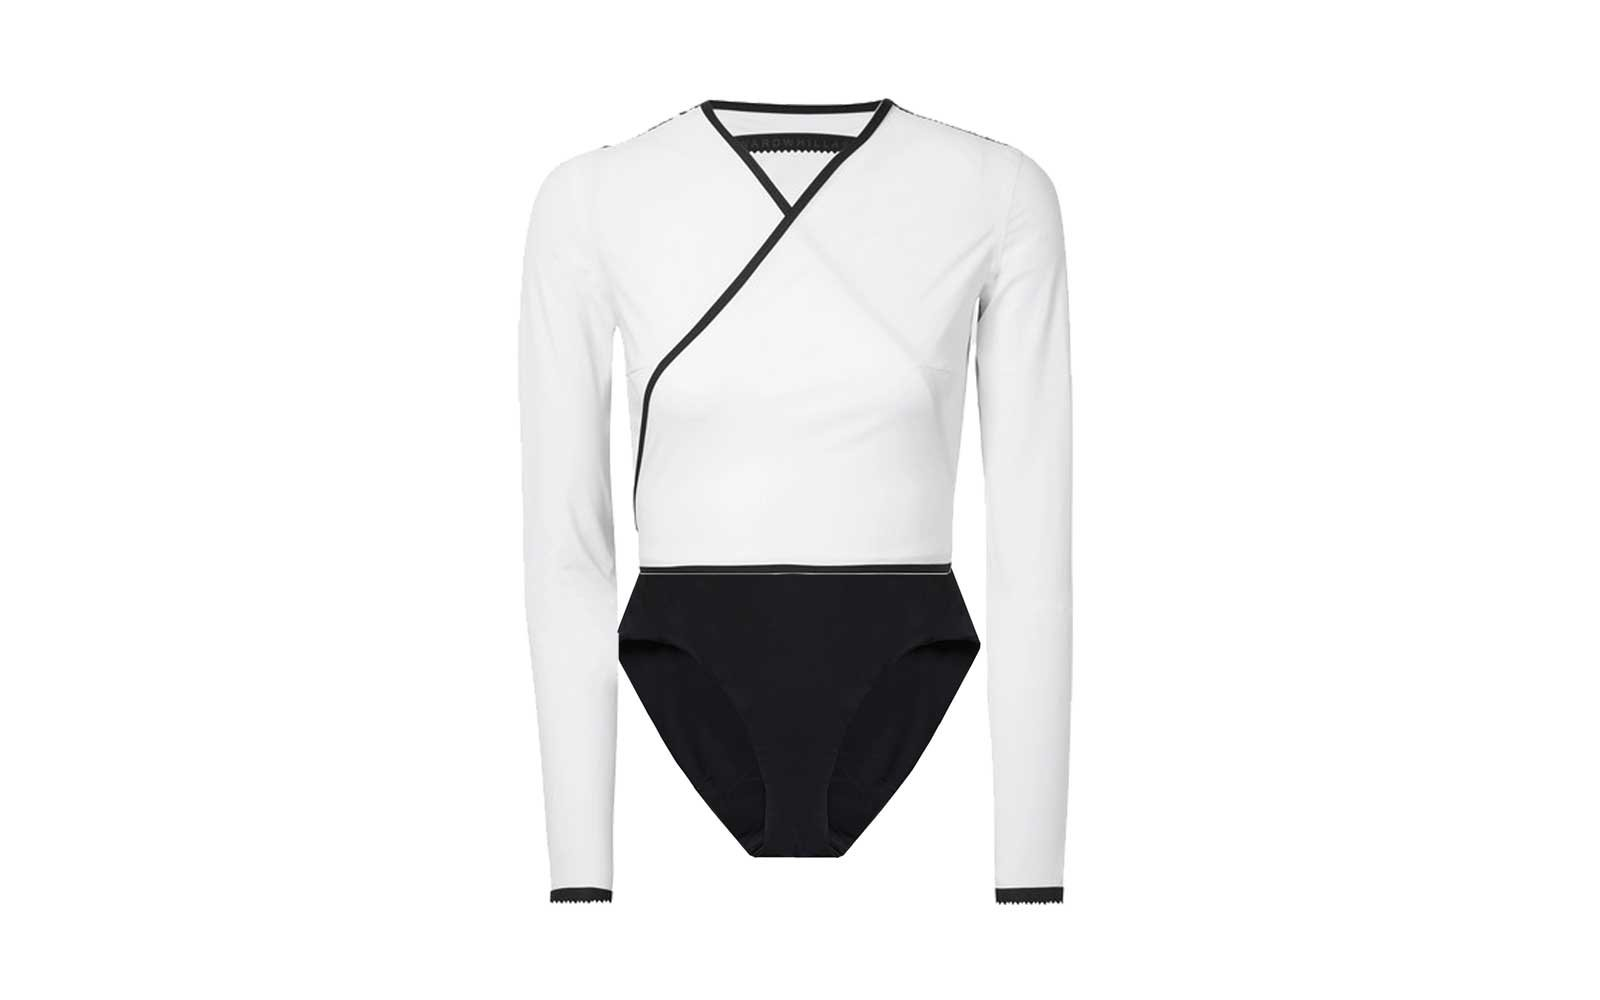 ward whillas long sleeve swimsuit